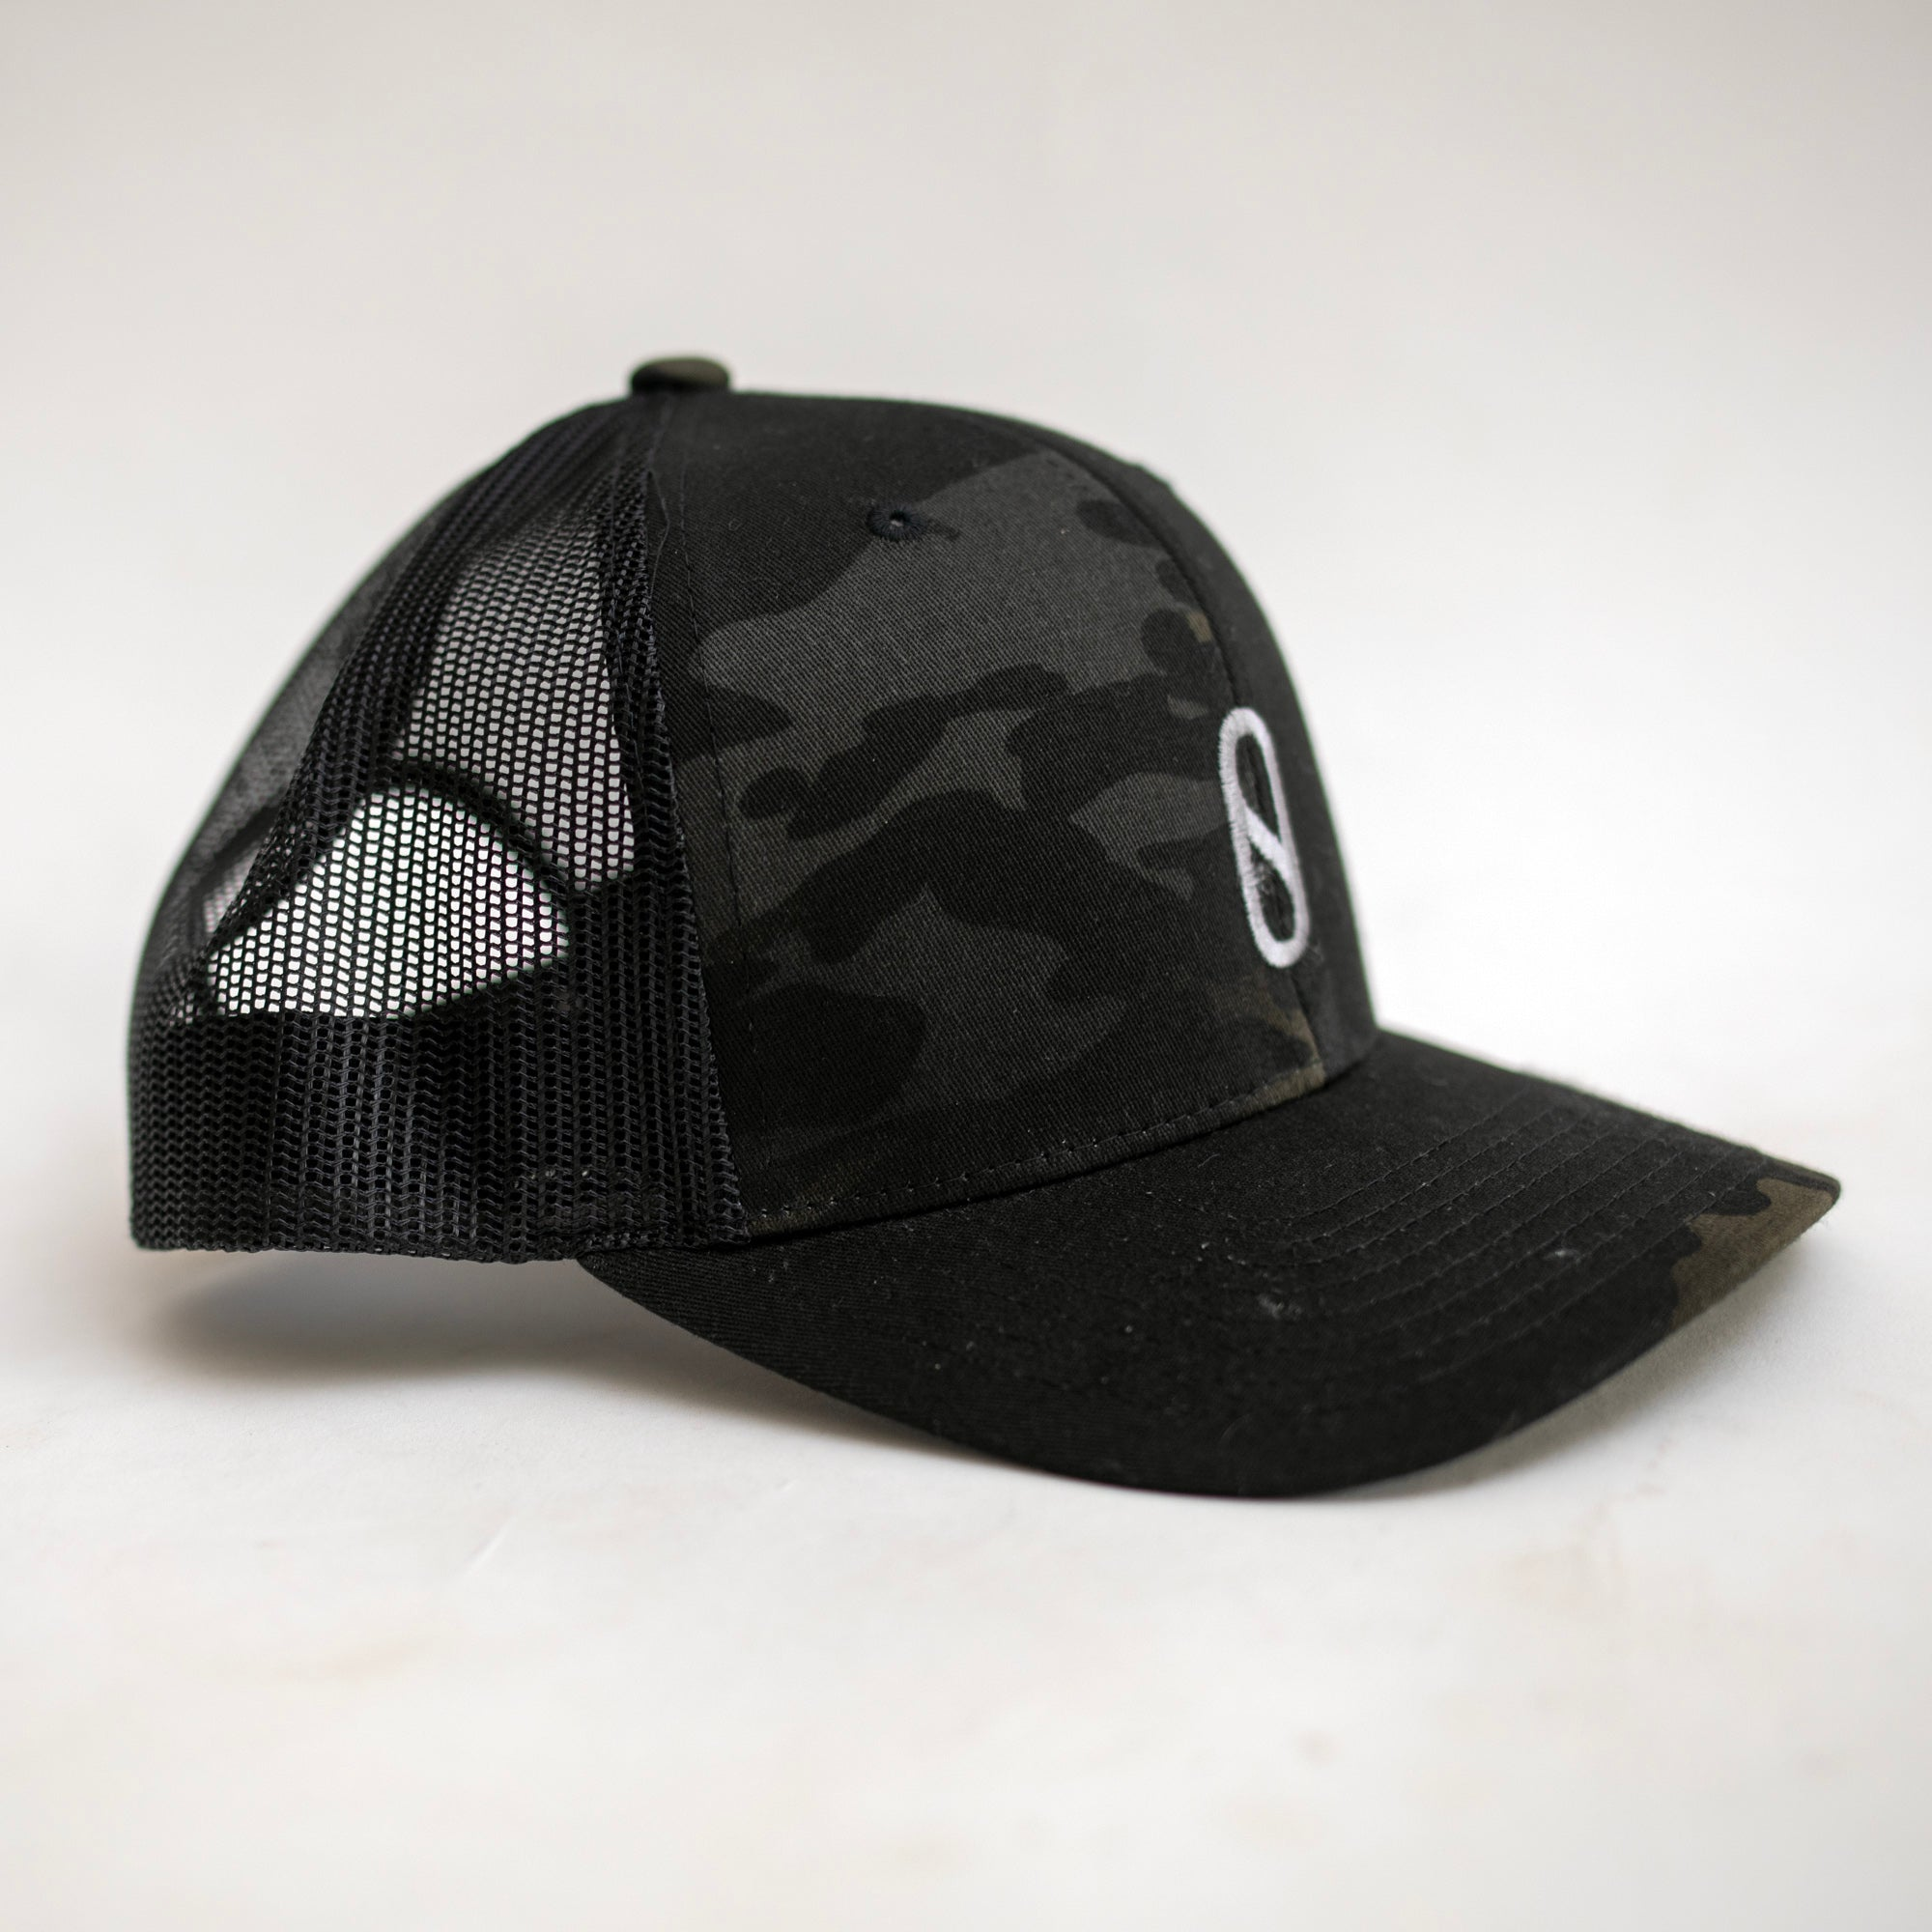 Firewire Slater Designs Pill Trucker Hat - Black/Dark Camo